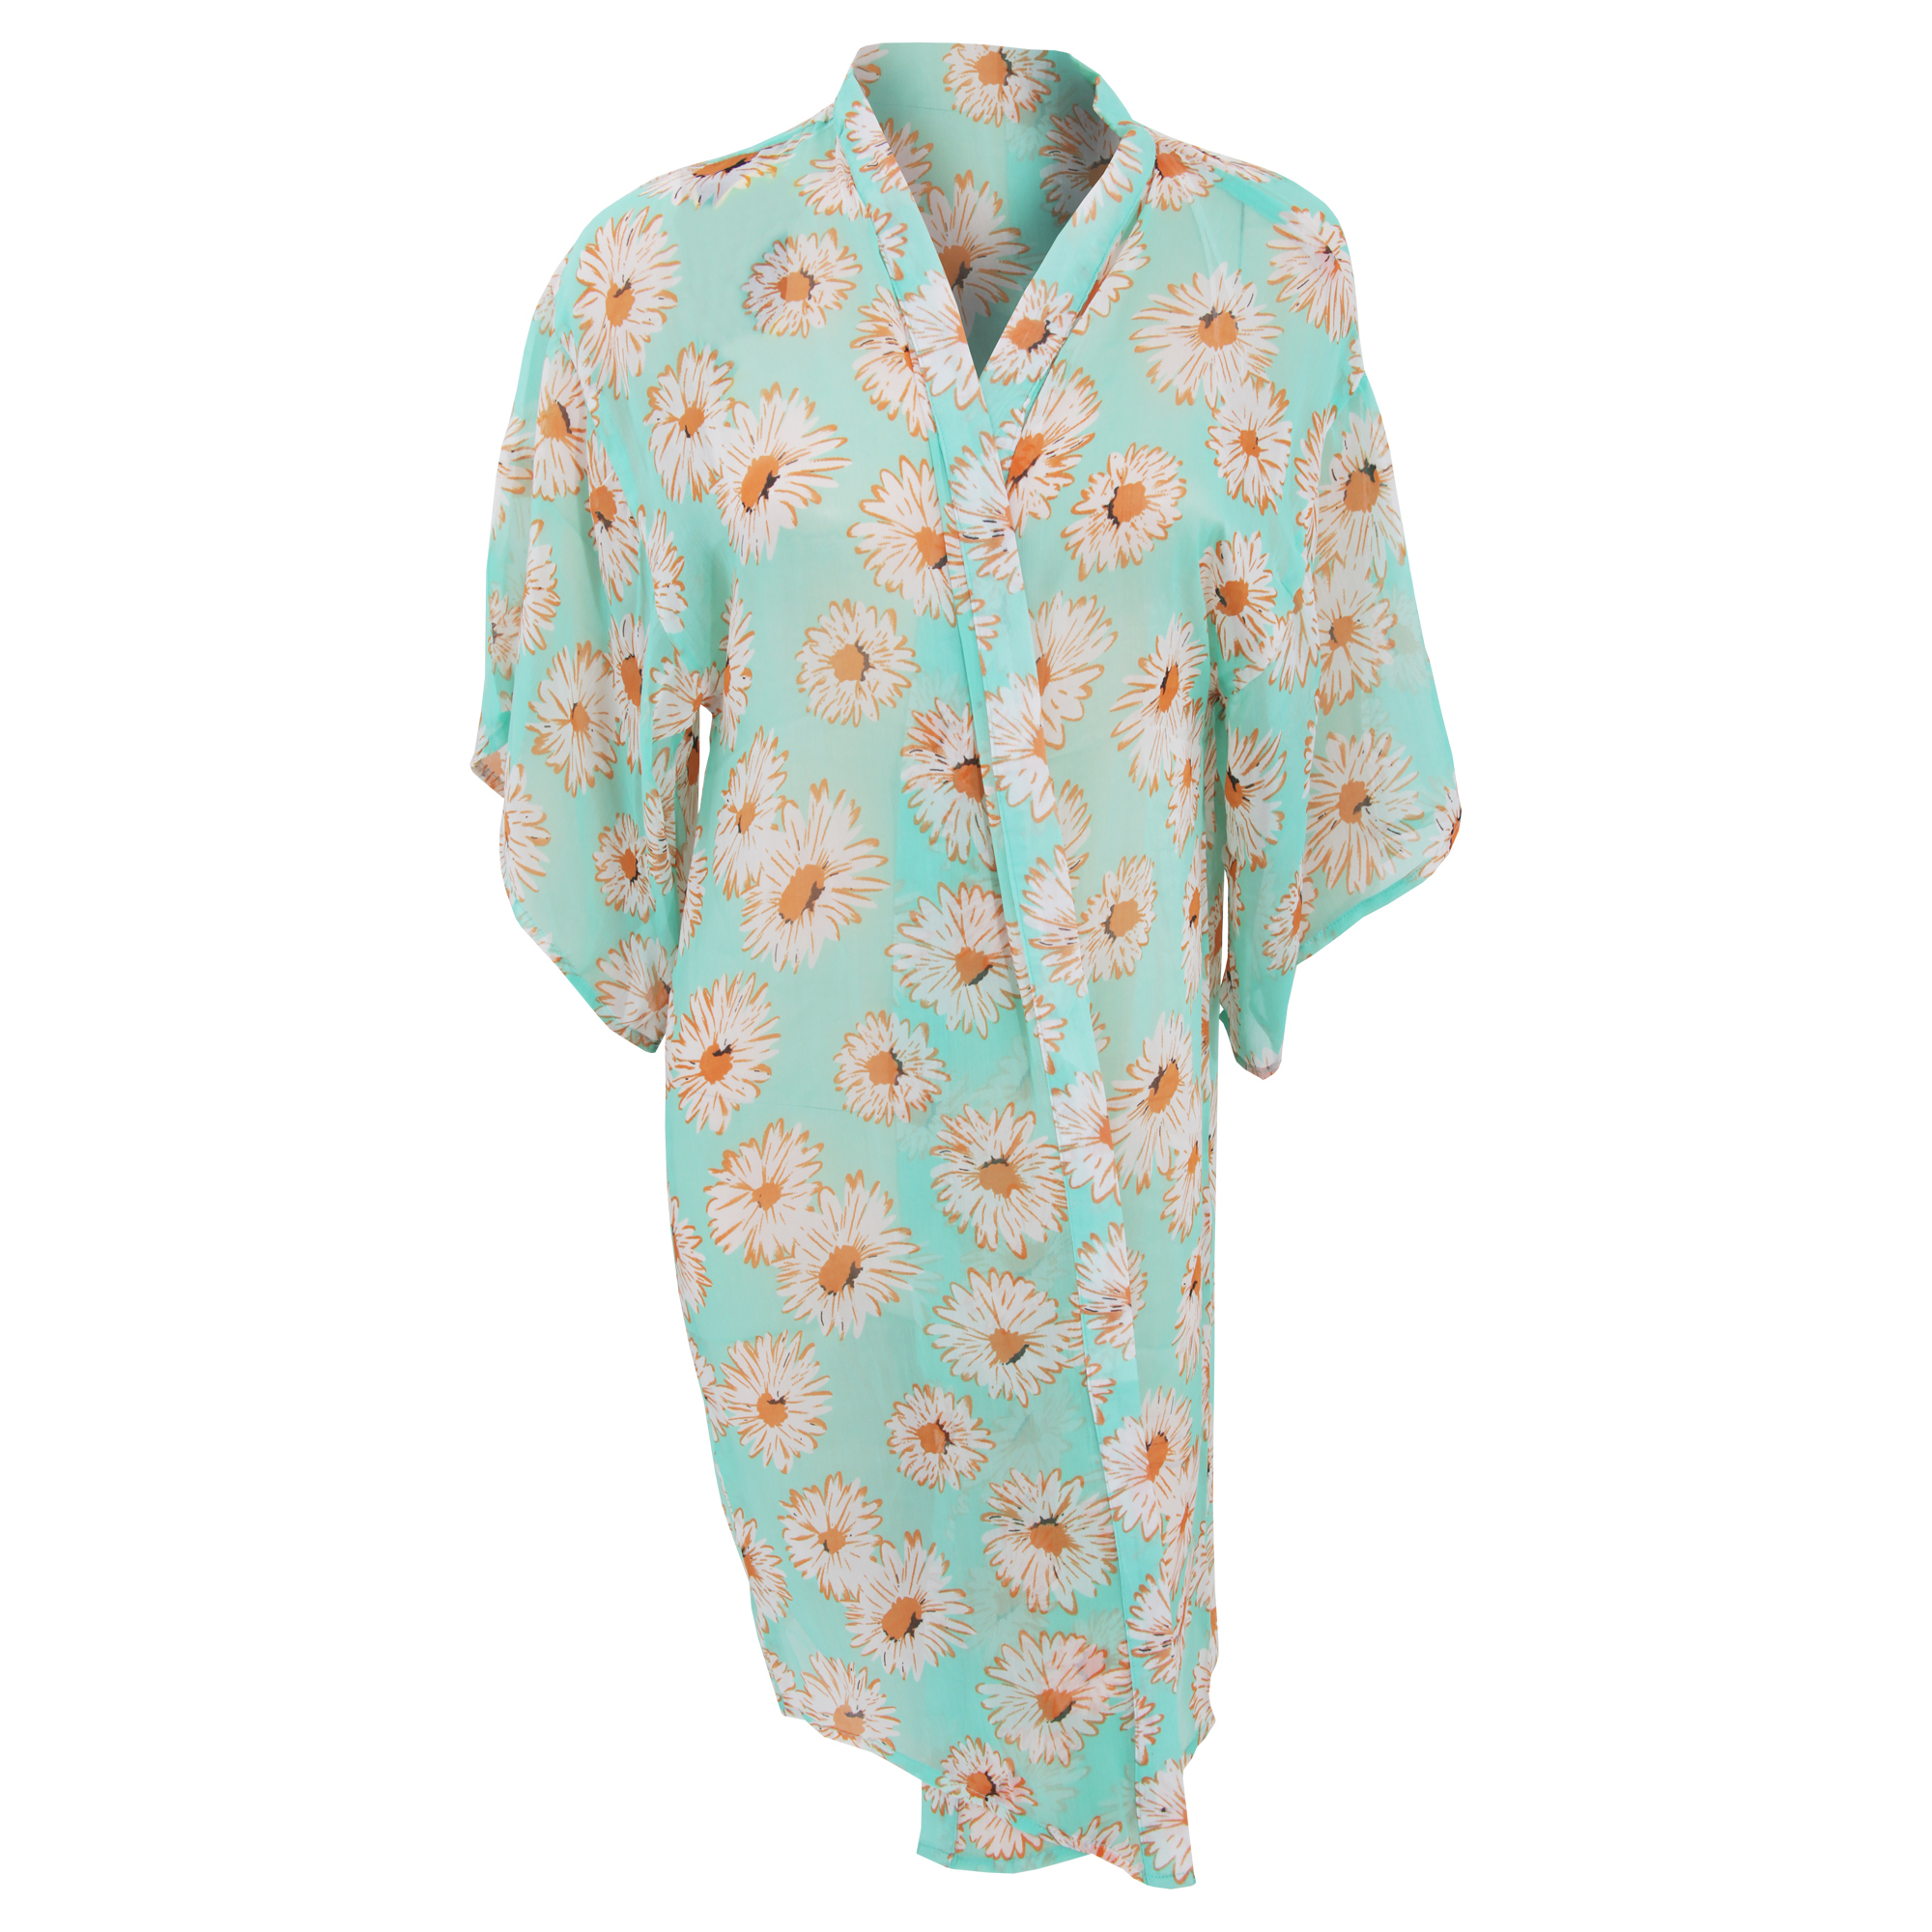 Bulk, Wholesale, Job Lot, Clearance Assorted Clothing (Dresses, Tops, Footwear And More) (Box 4) (Womens Green Beach Shirts (Set of 40))